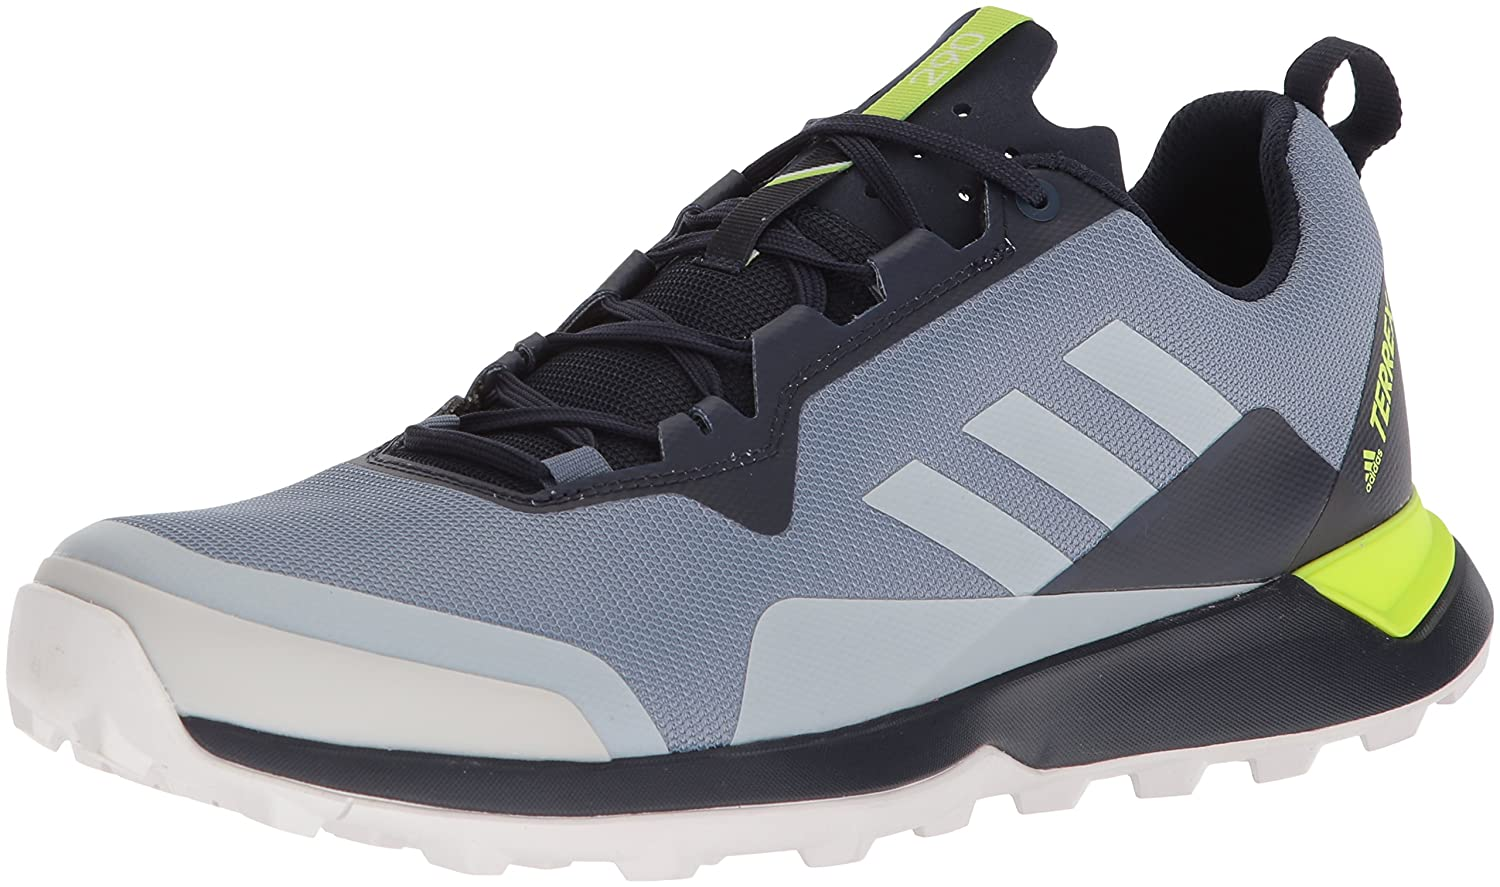 Adidas outdoor Men's Terrex CMTK Walking Schuhe, Raw Steel Grau One Orange, 8 D US